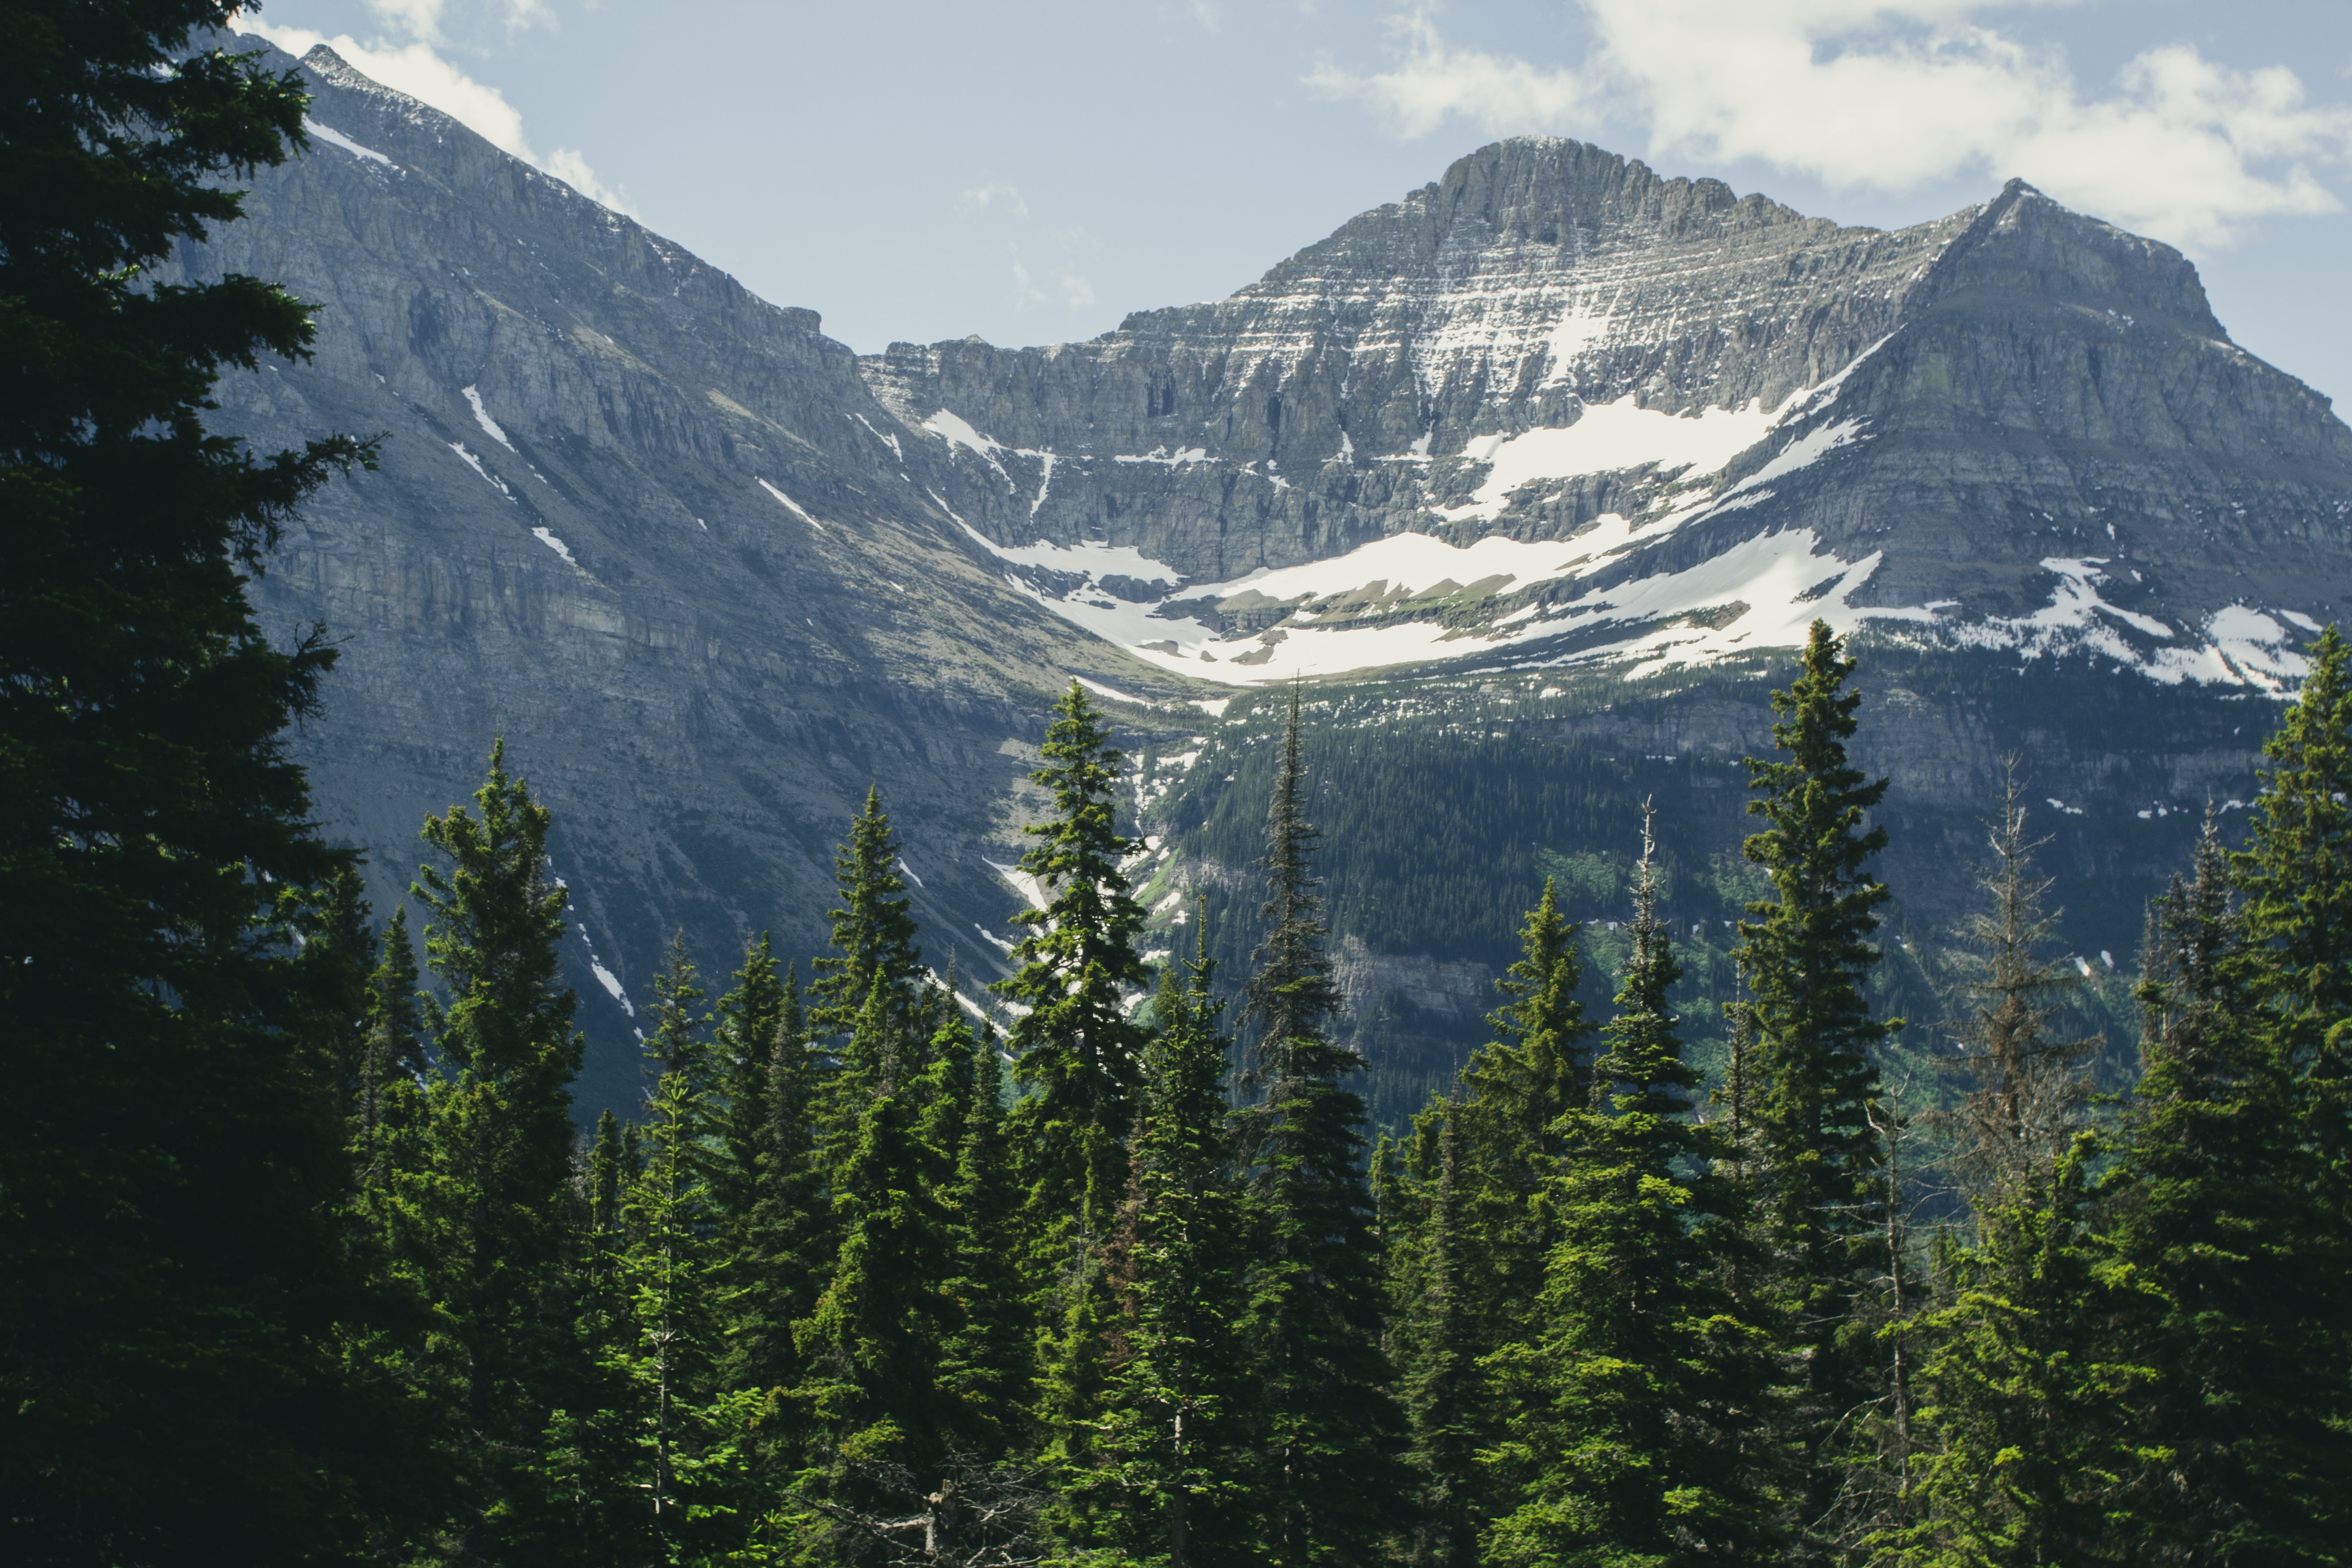 green pine tree and icy mountain